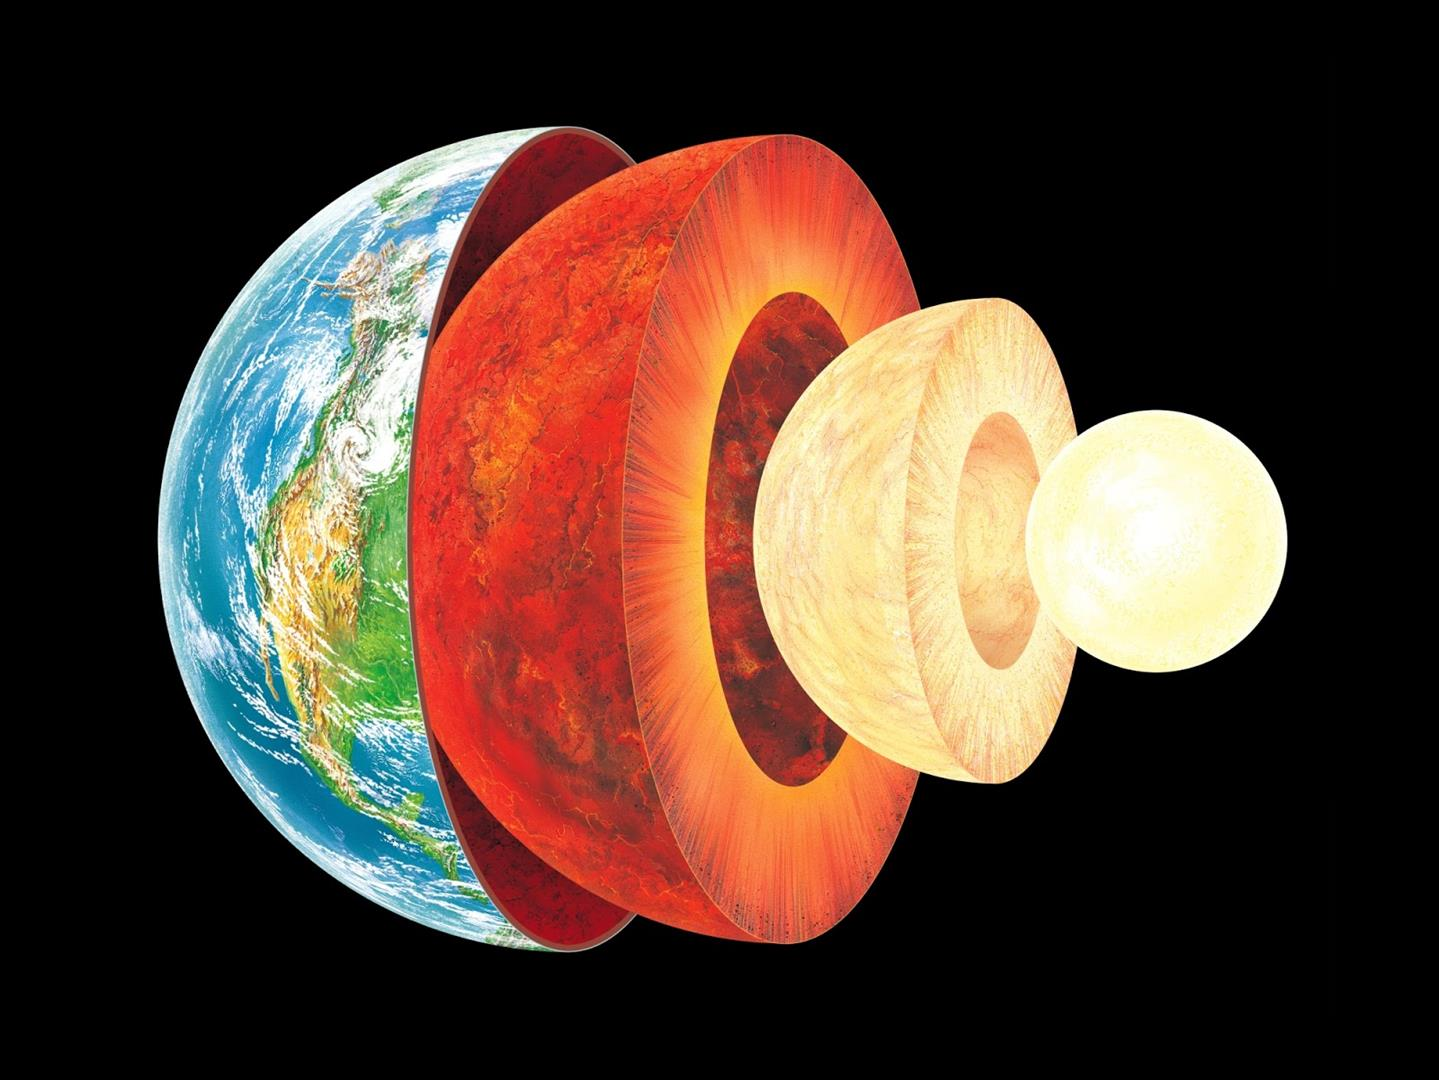 Earths Layers on emaze